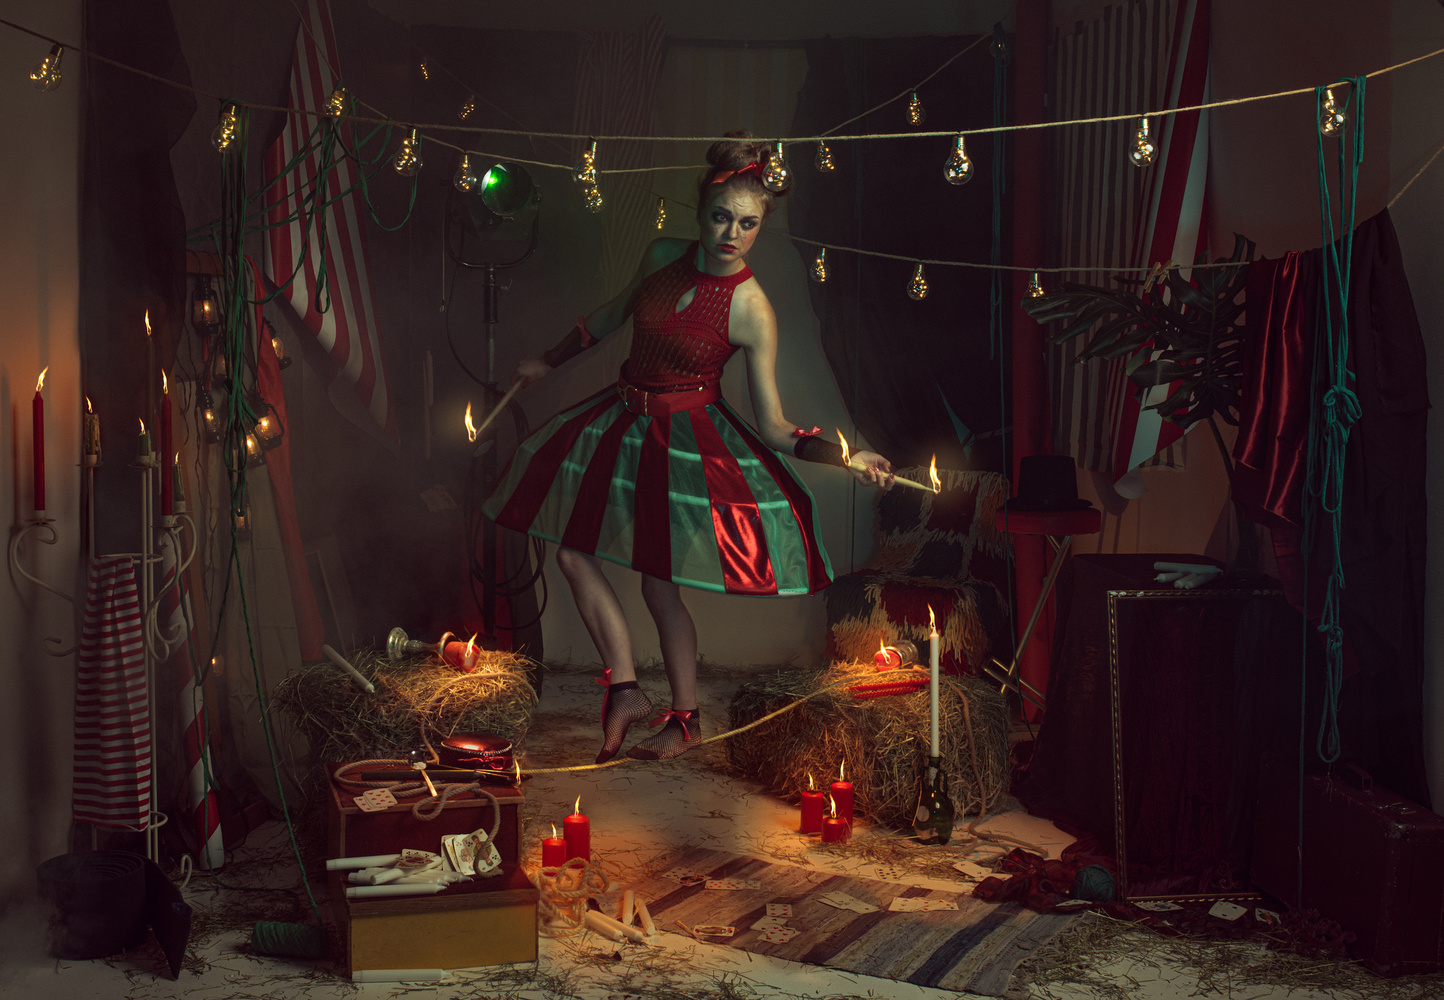 """Stories from the Melancholy Circus / Chapter III: """"Unstable times of the Rope Dancer"""" by Suvi Sievilä"""